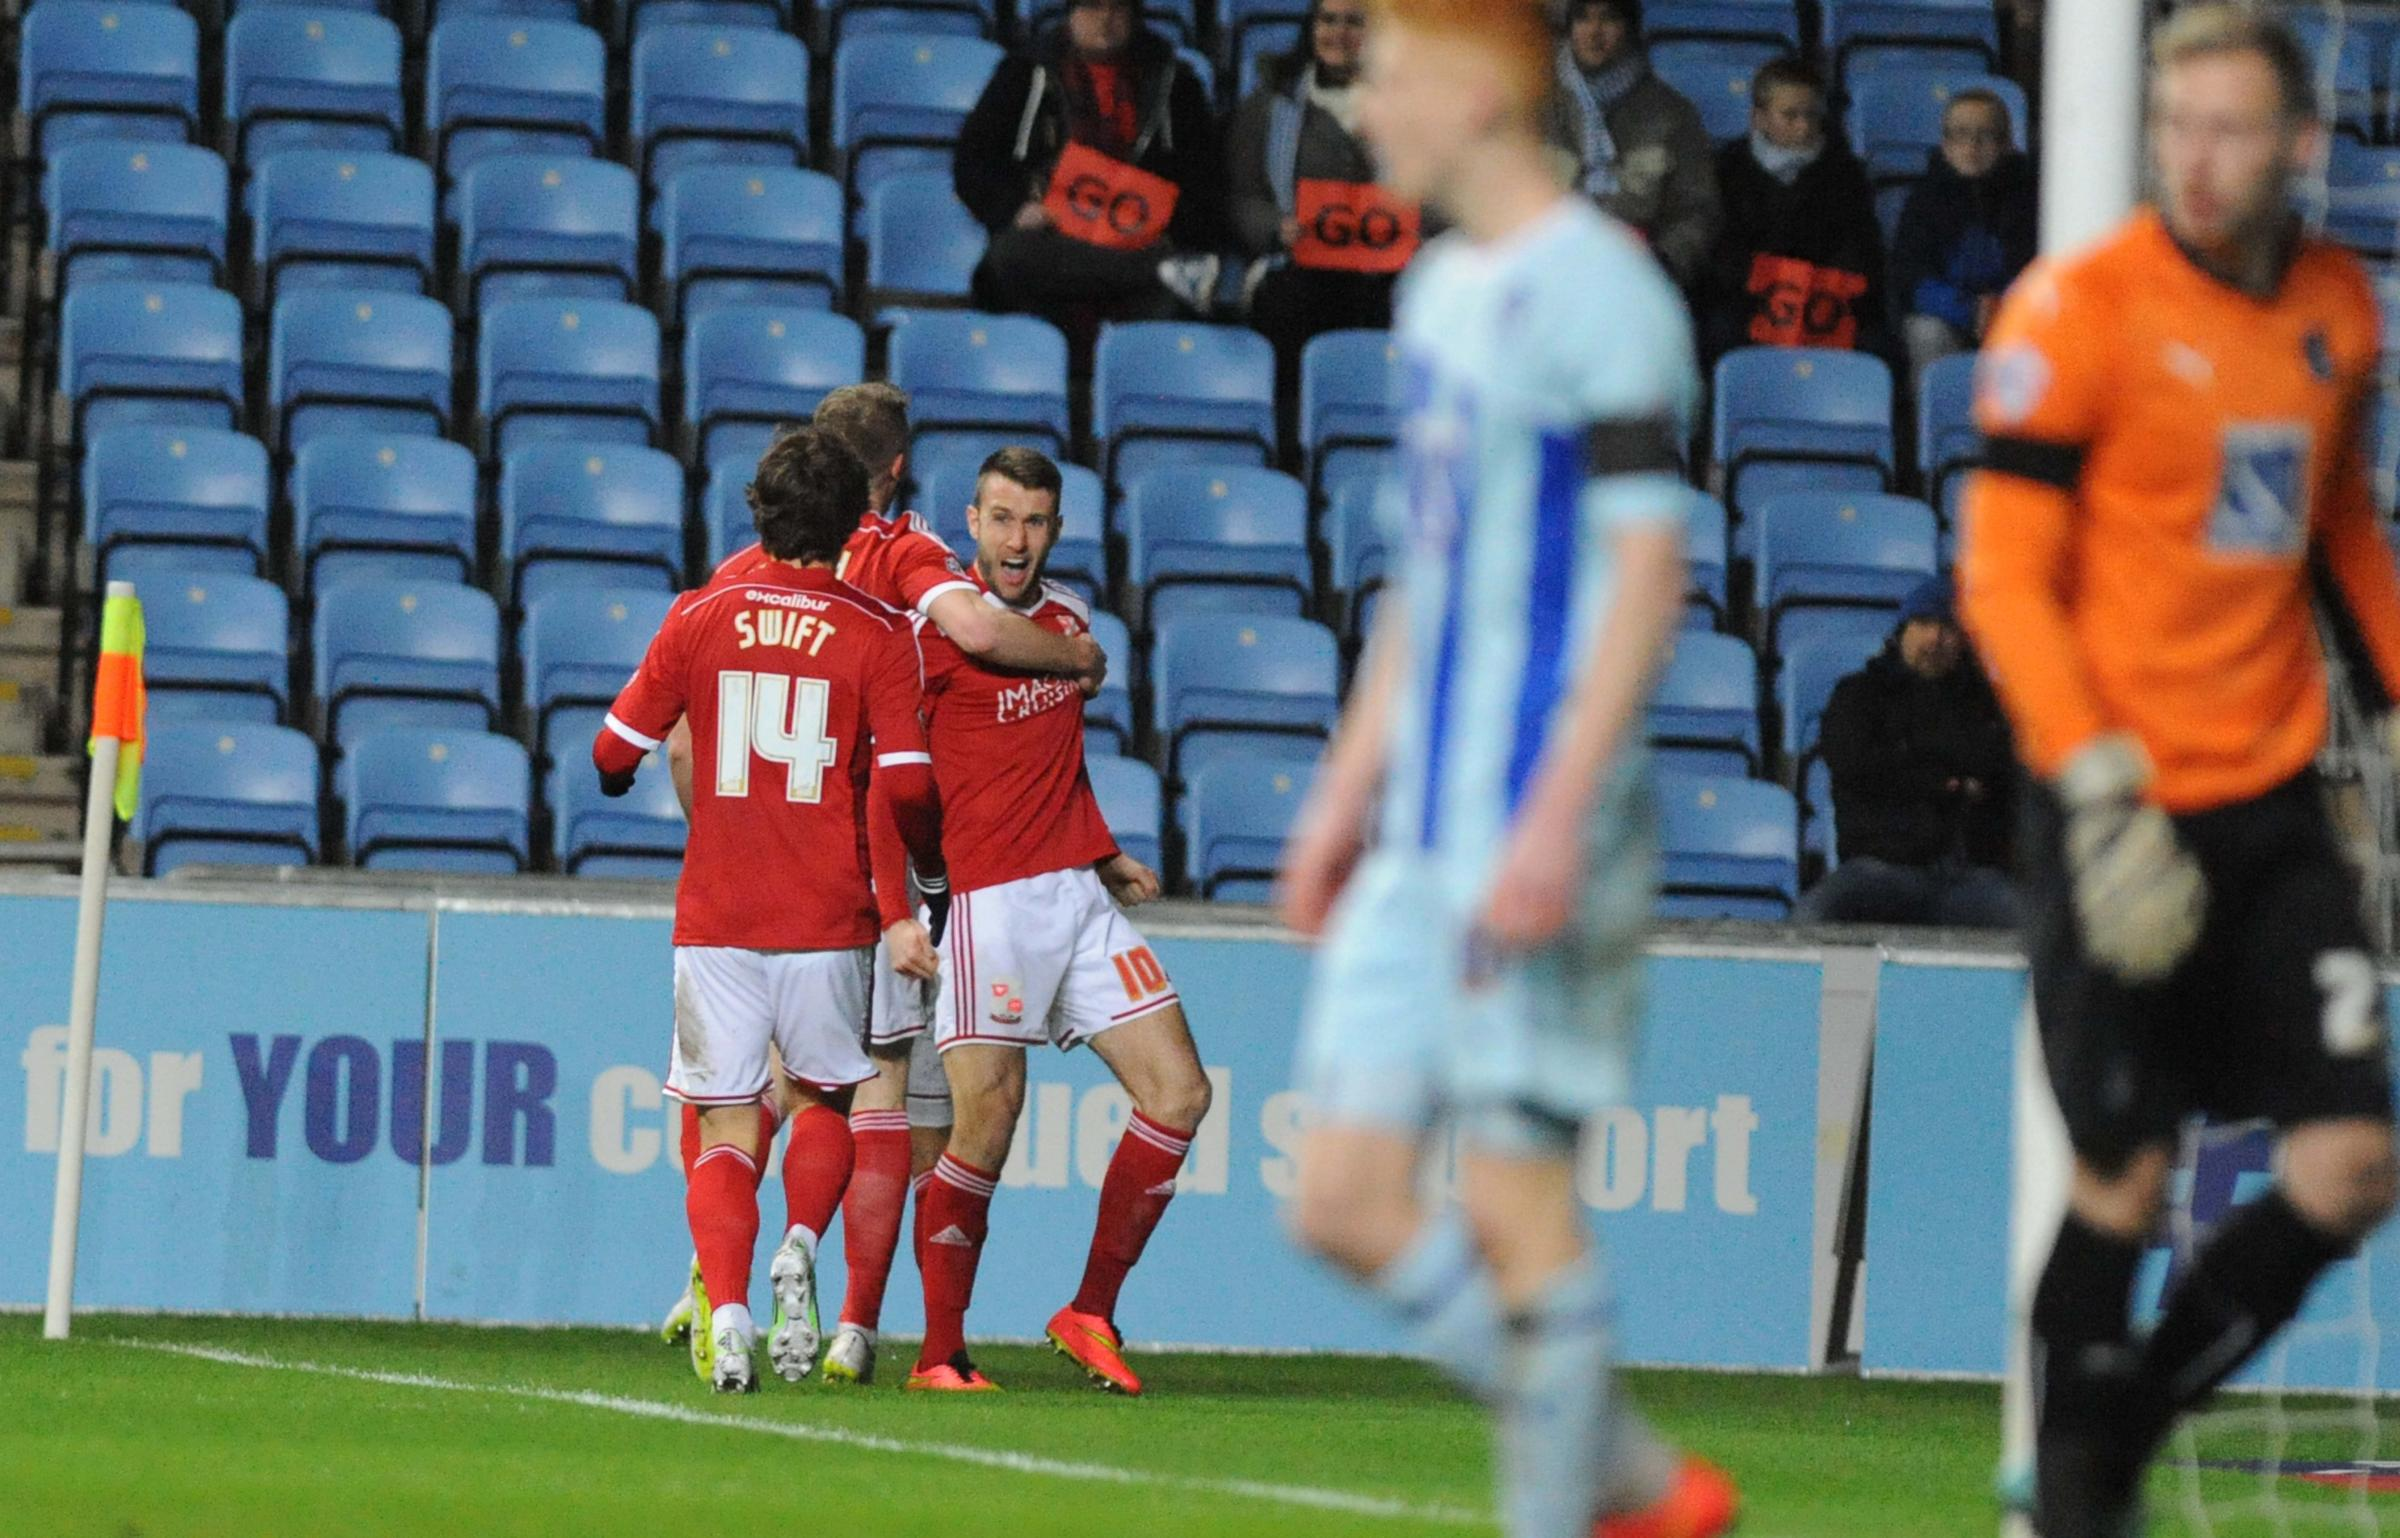 Andy Williams takes the congratulations of Swindon Town team-mates Michael Smith and John Swift after putting his side a goal up at Coventry City (Picture: Dave Evans)